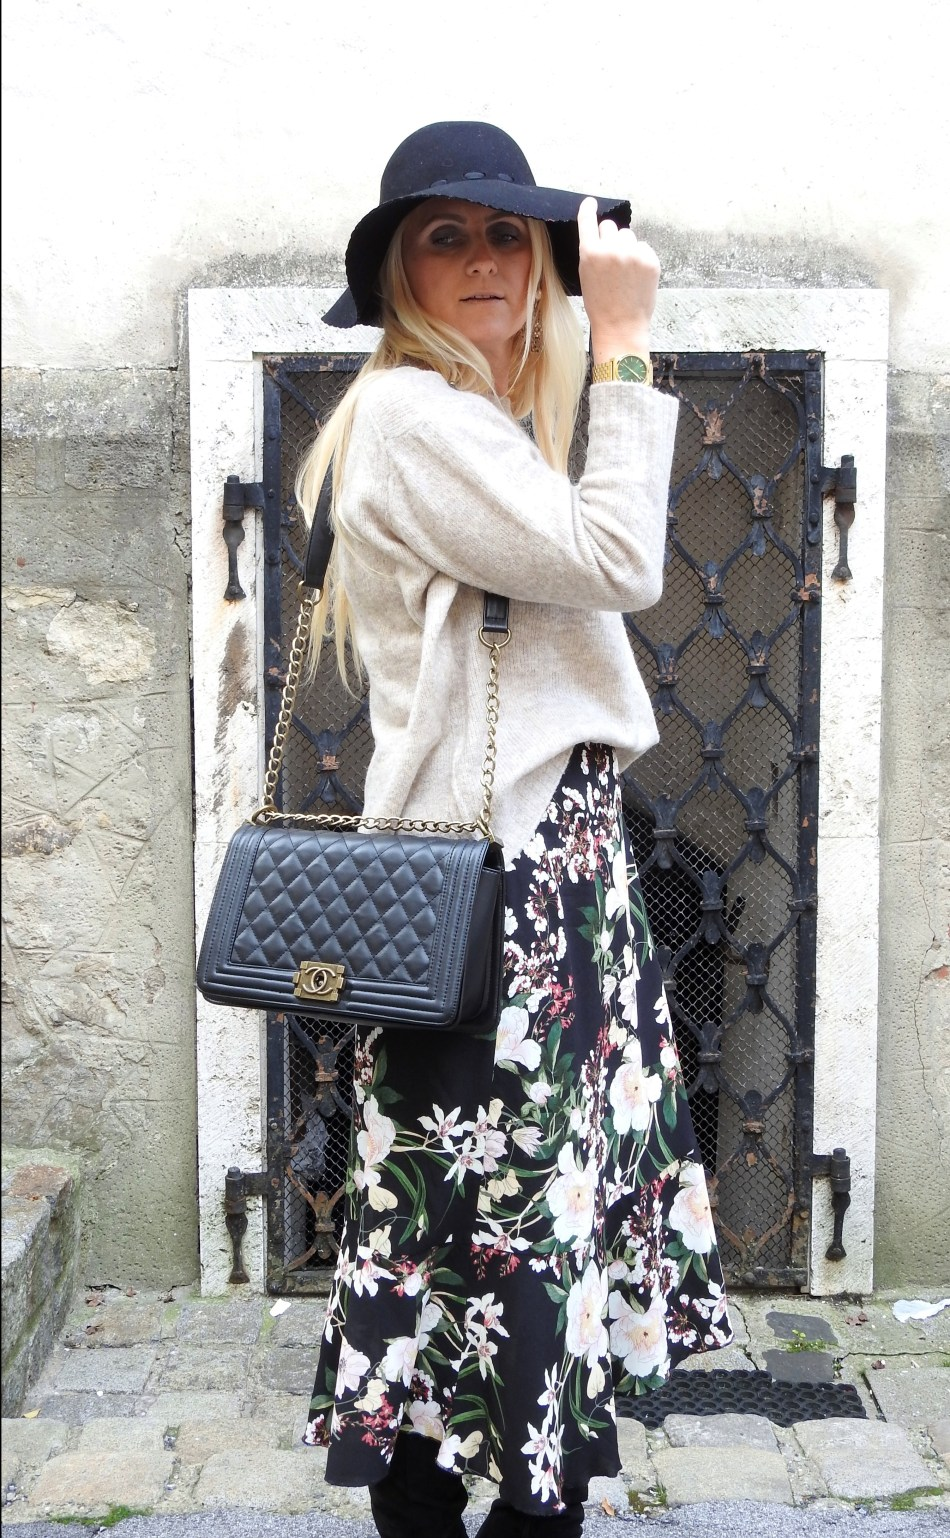 Floralprint-Blumenprint-Wickelrock-Skirt-Overknees-Boots-Chanel-Bag-carrieslifestyle-Tamara-Prutsch-Beige-Sweater